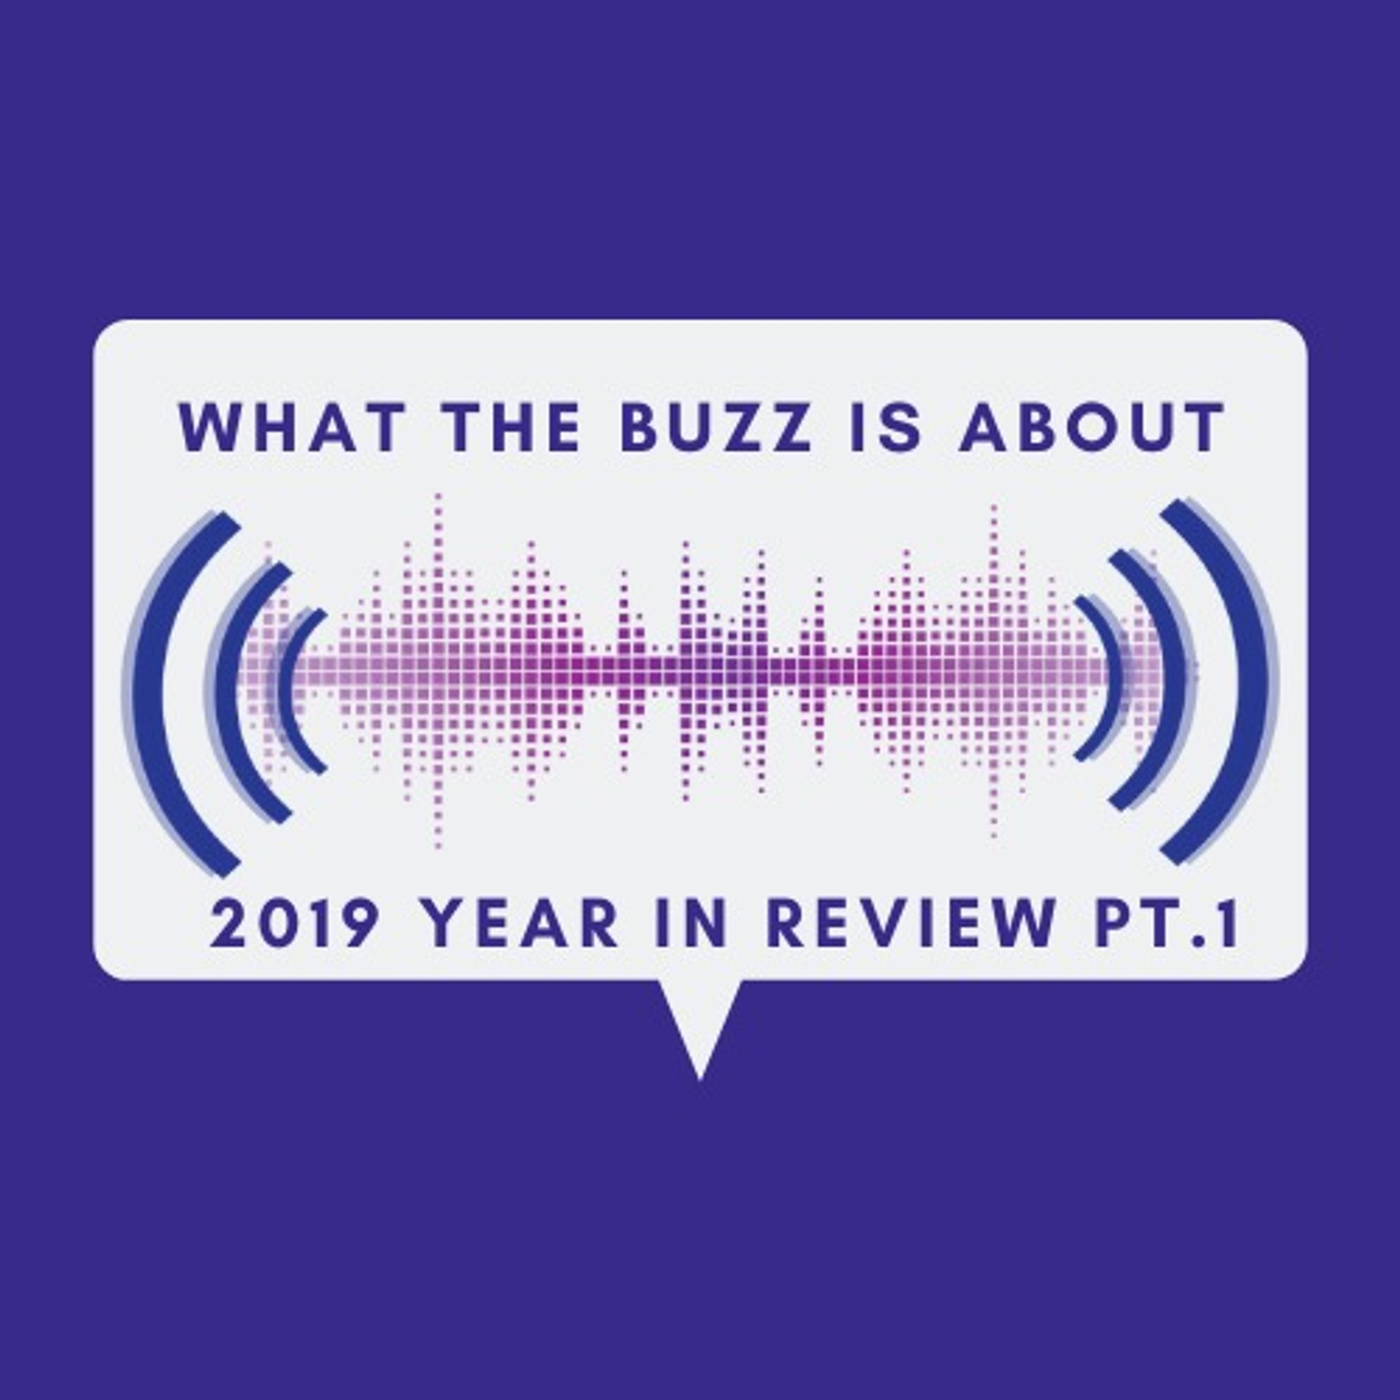 2019 Year in Review - Part 1